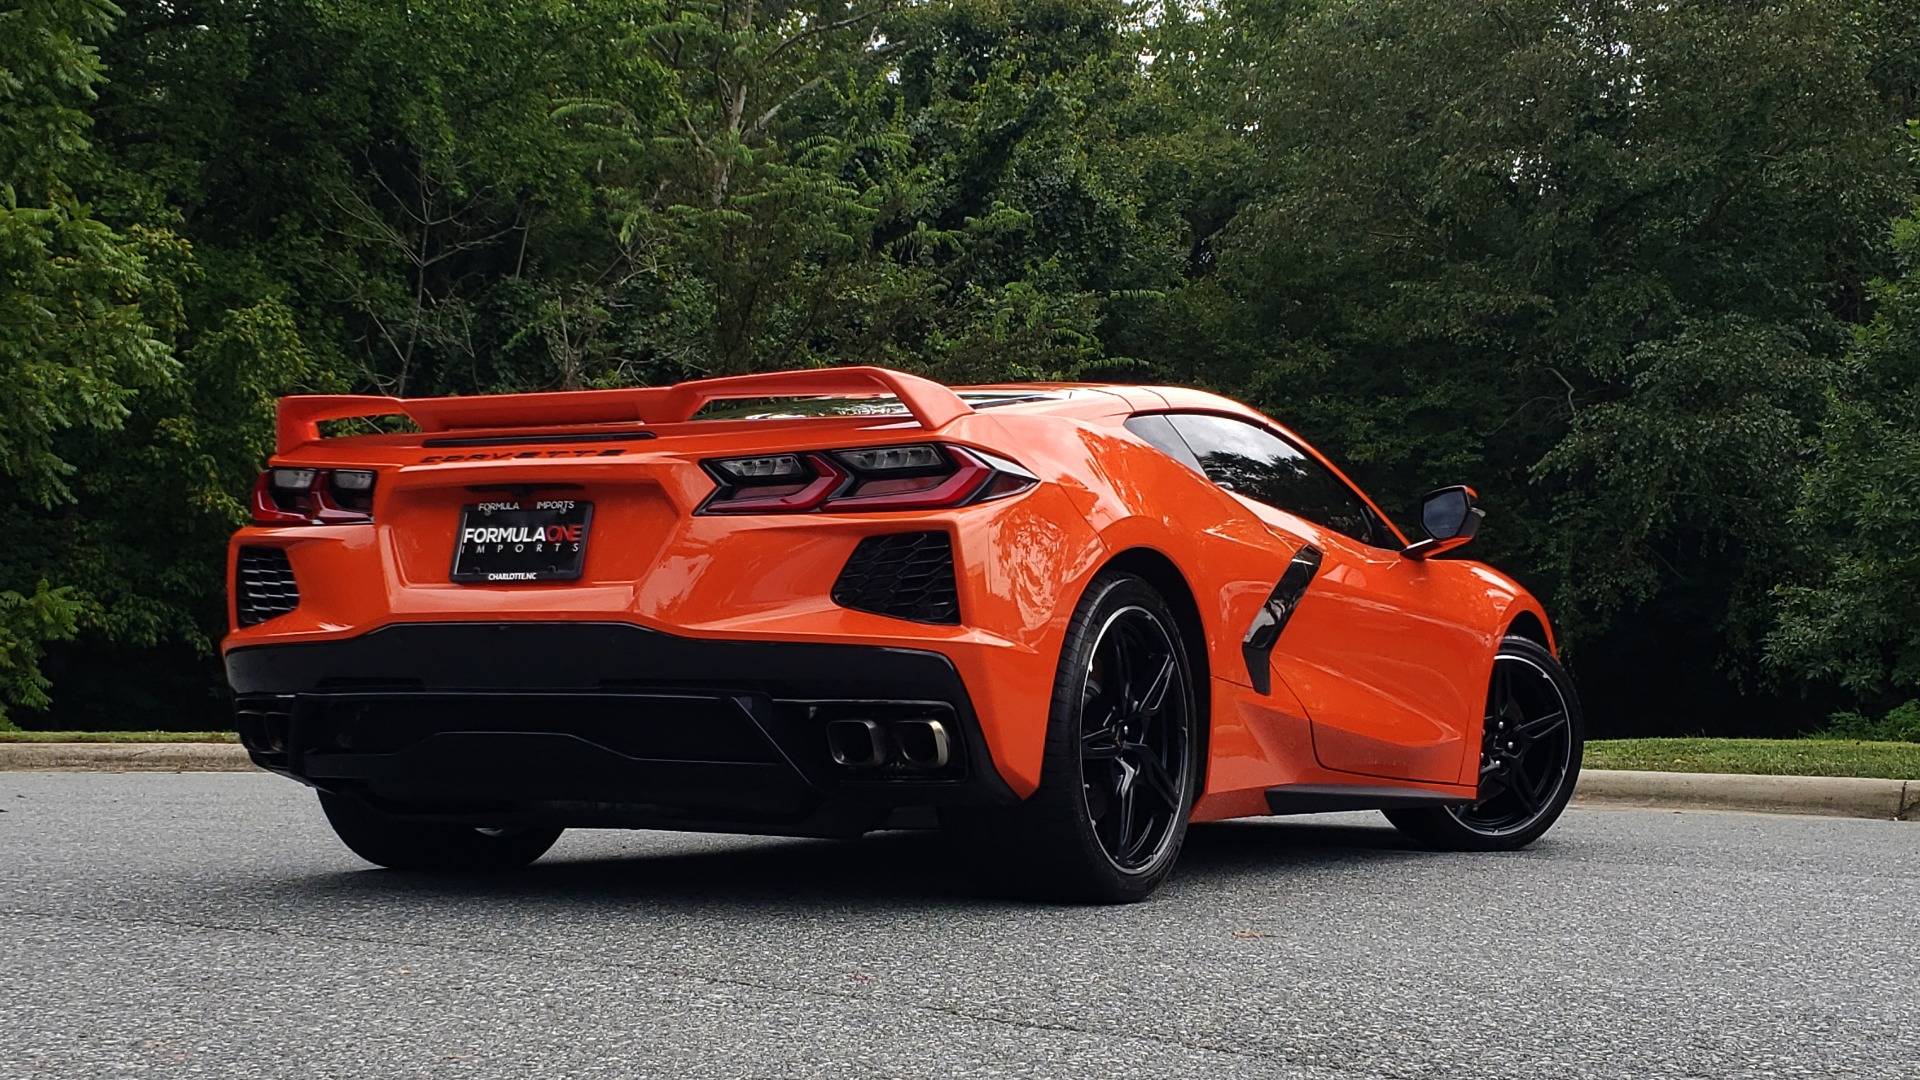 Used 2020 Chevrolet CORVETTE C8 STINGRAY 2LT / 6.2L V8 / 8-SPD AUTO / NAV / BOSE / REARVIEW / DATA RECOR for sale Sold at Formula Imports in Charlotte NC 28227 10